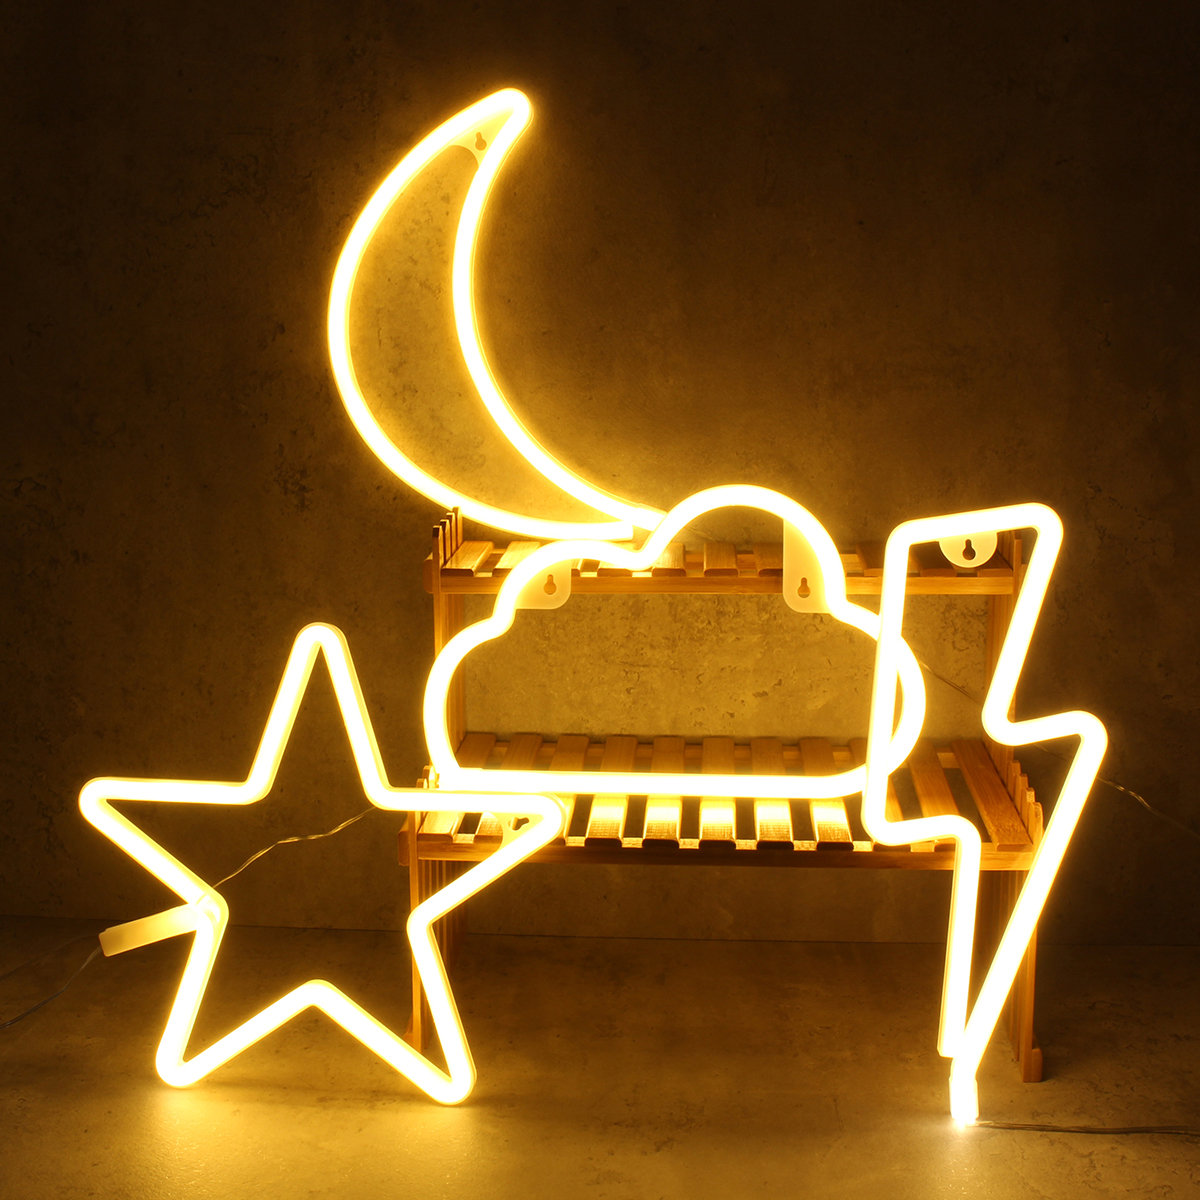 Diy Art Sign Star Cloud Heart Neon Home Party Wall Decor Led Night